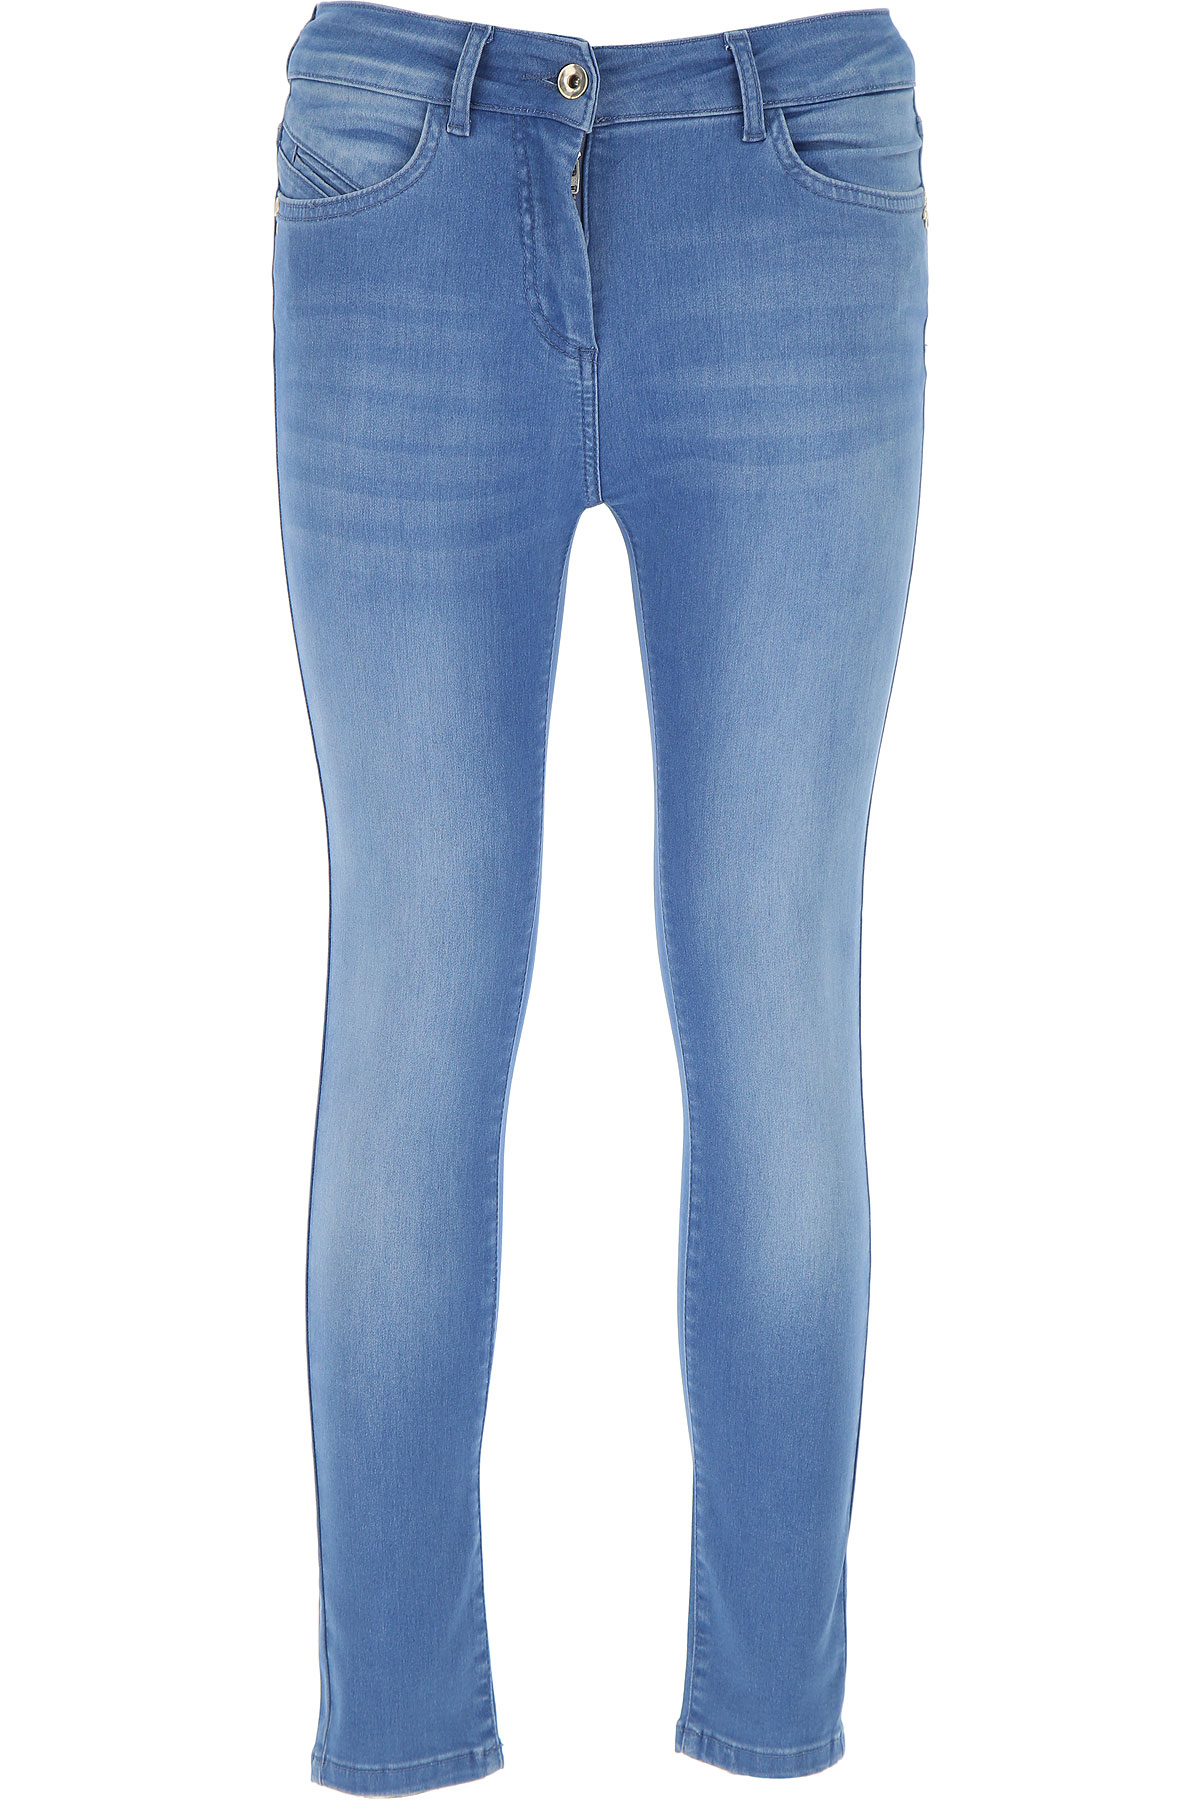 Patrizia Pepe Jeans On Sale, Denim Blue, Cotton, 2017, 25 26 28